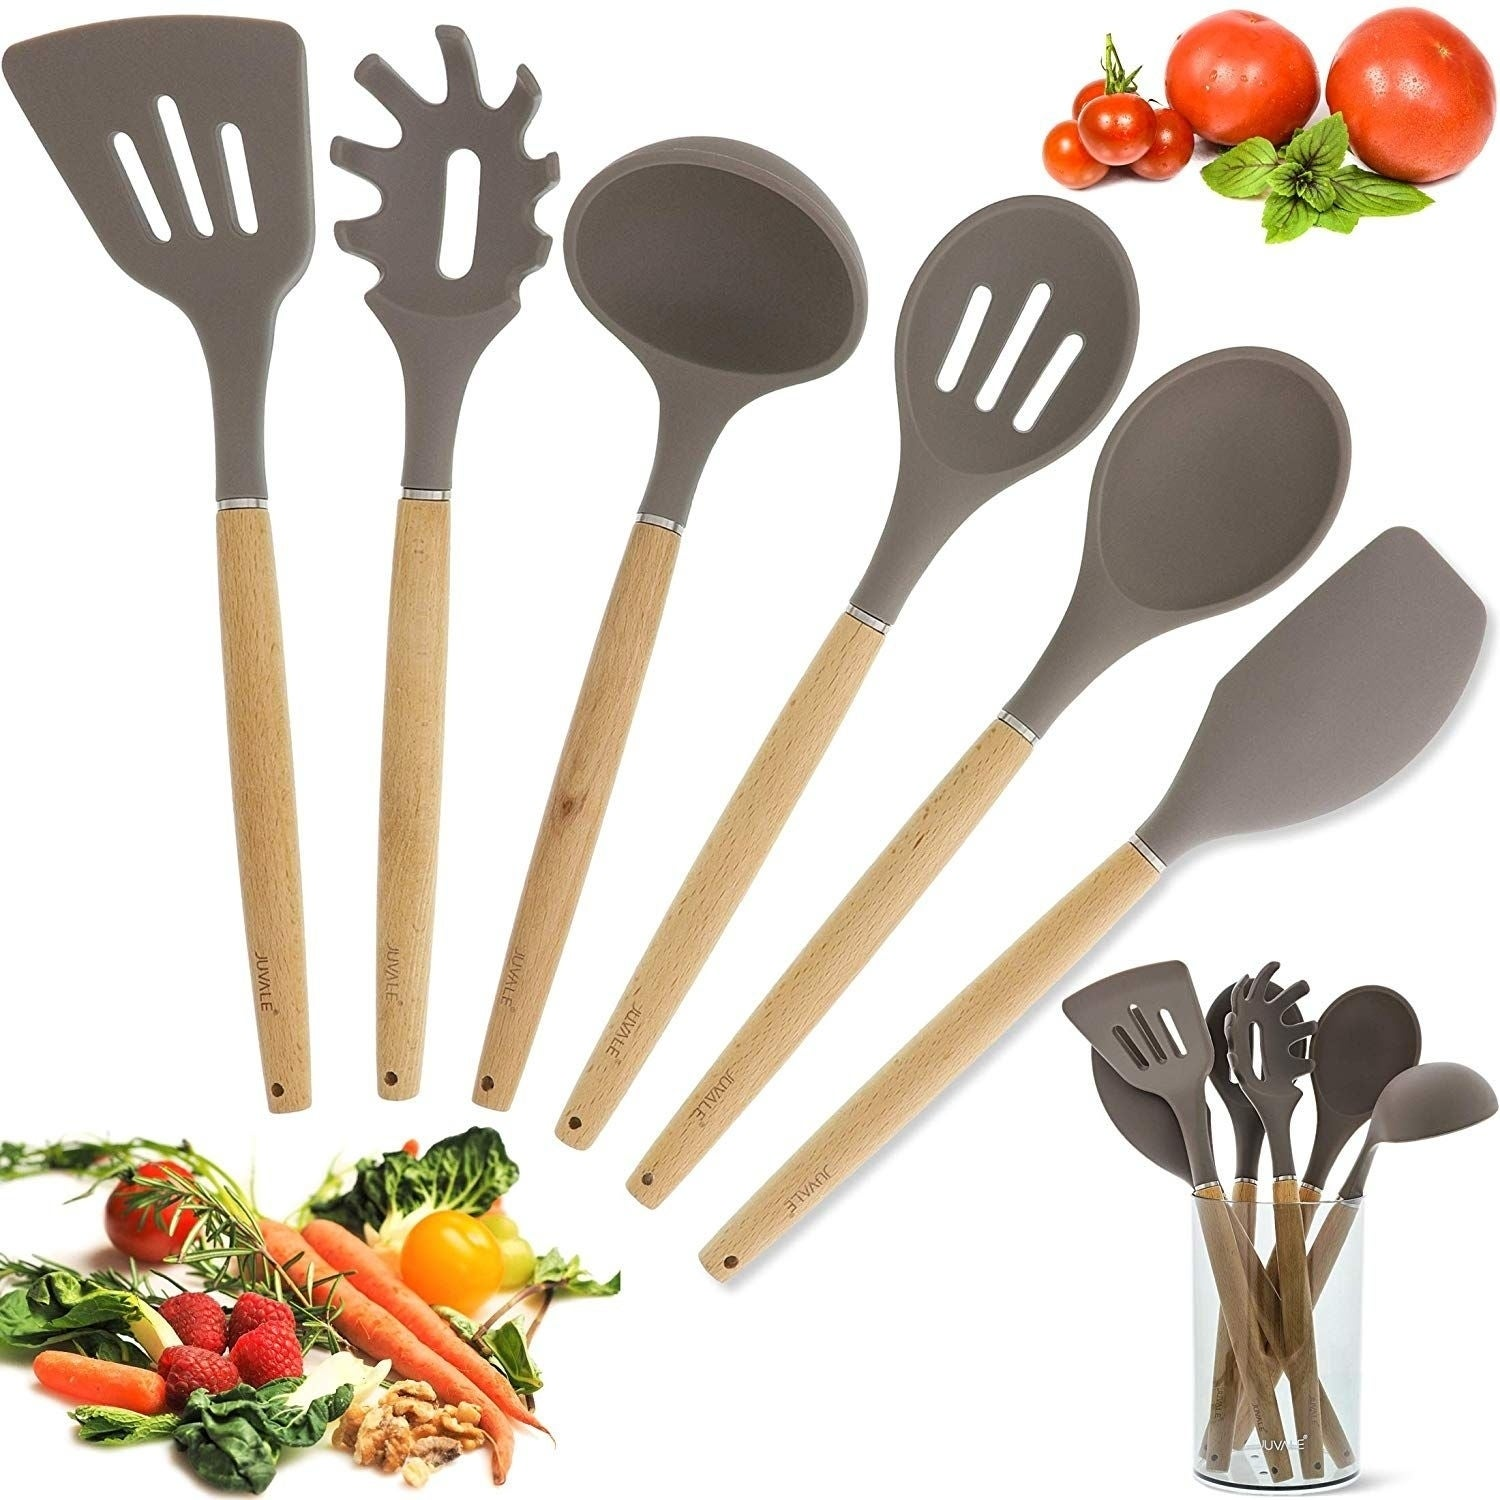 Kitchen Utensils Set of 6 w// Spatula Ladle Turner Spoon Spaghetti Server /& More